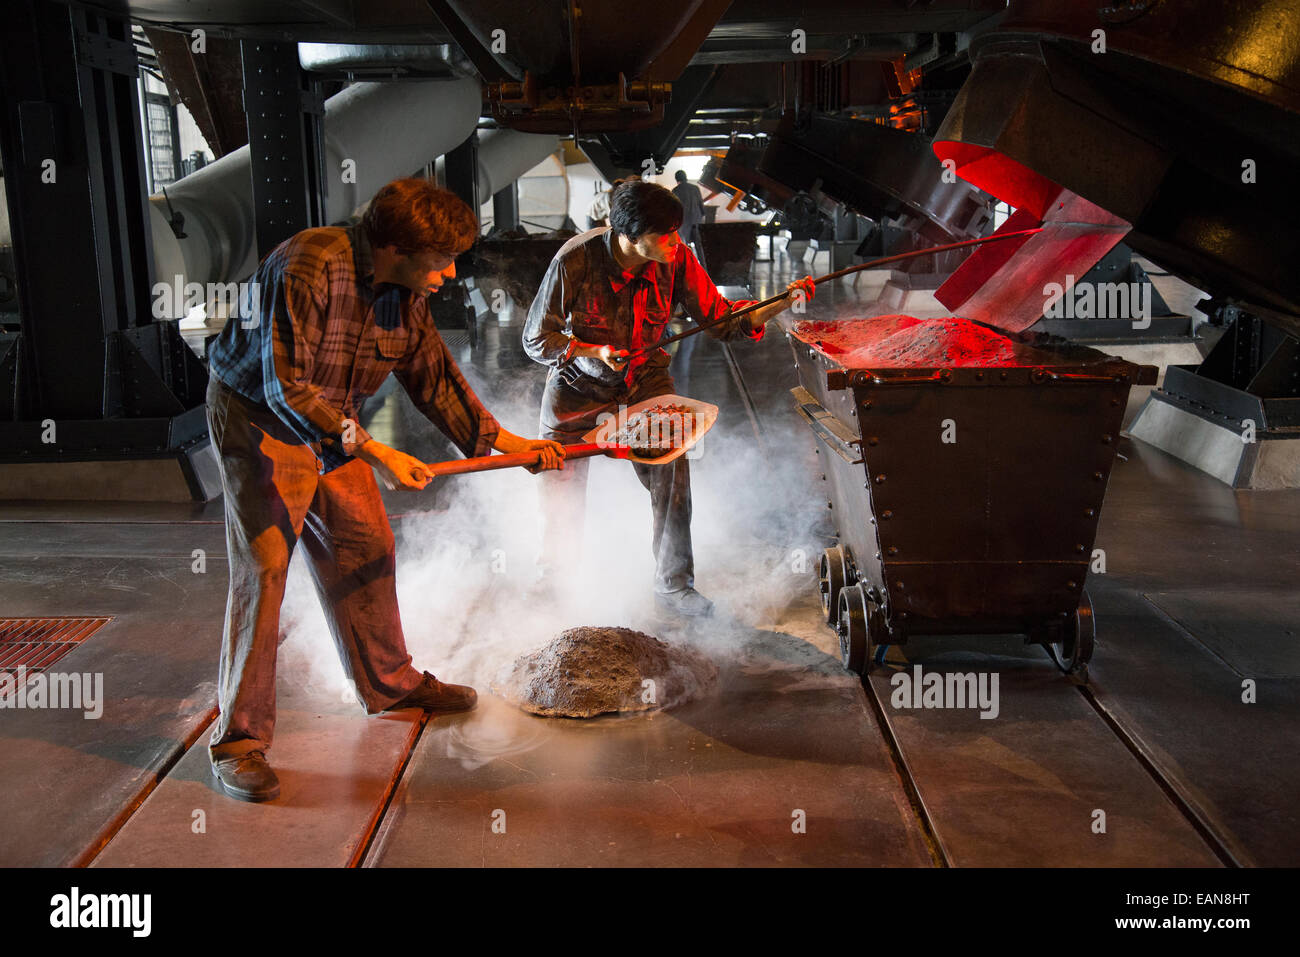 High Pressure Stockfotos & High Pressure Bilder - Alamy